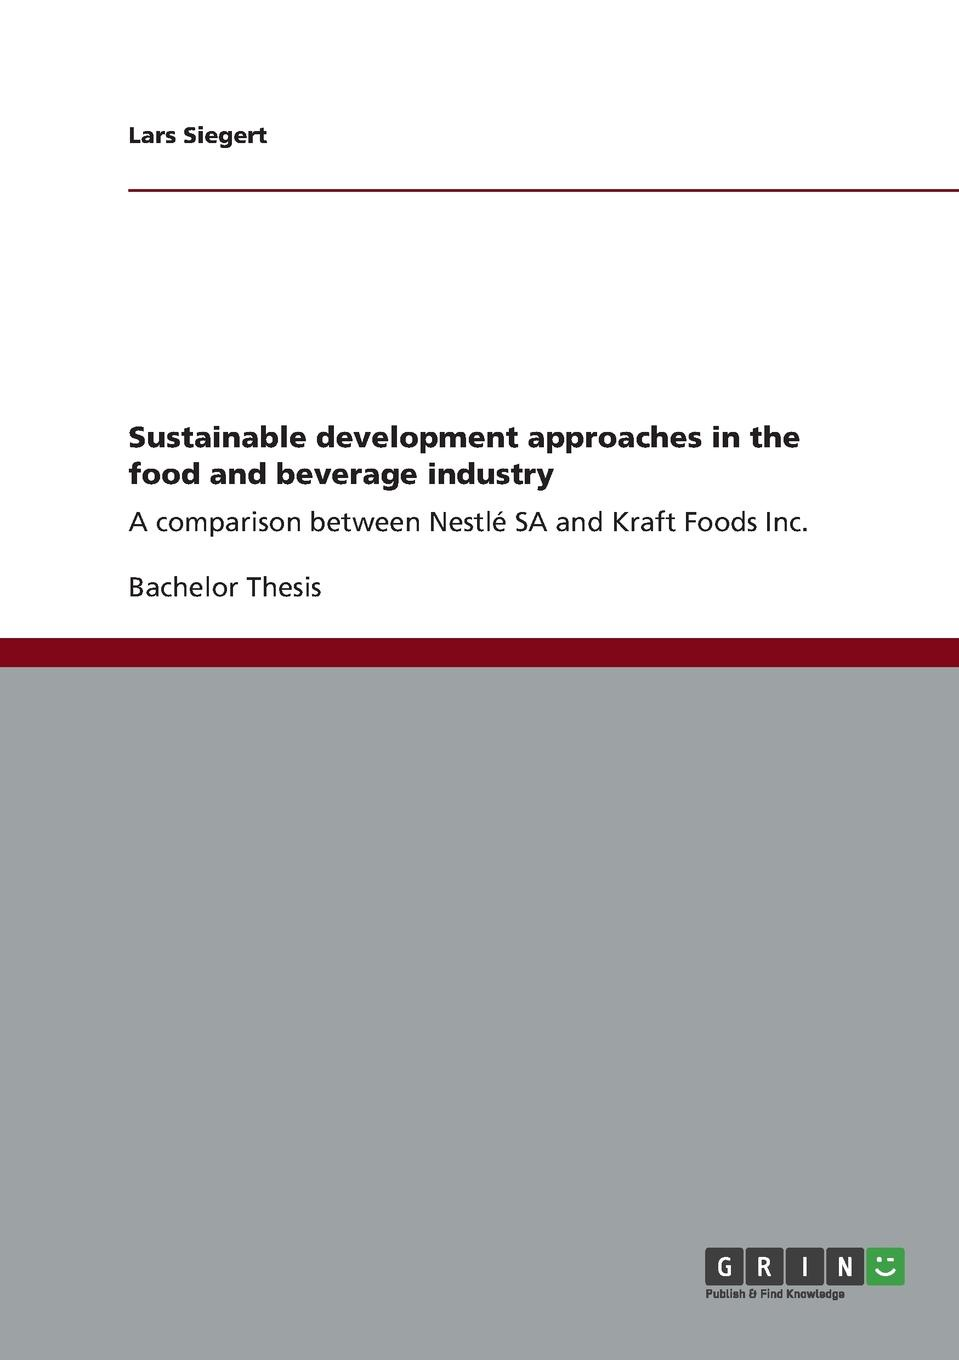 Lars Siegert Sustainable development approaches in the food and beverage industry nicolas lesca environmental scanning and sustainable development